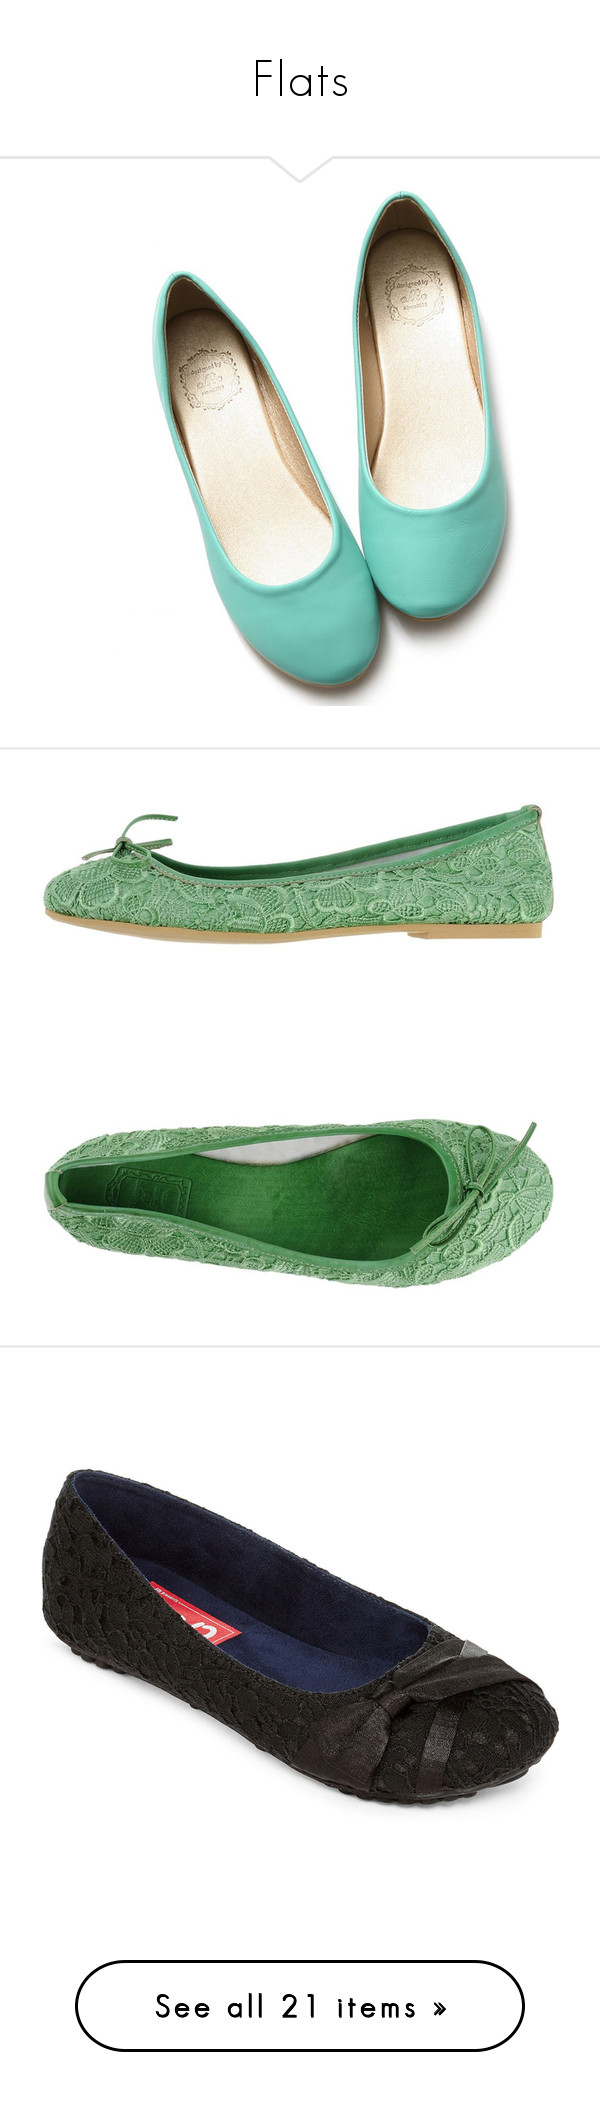 """""""Flats"""" by rh87 on Polyvore featuring shoes, flats, ballerina shoes, ballet flat shoes, ballet shoes, short heel shoes, low heel shoes, light green, bow flats and flat shoes"""